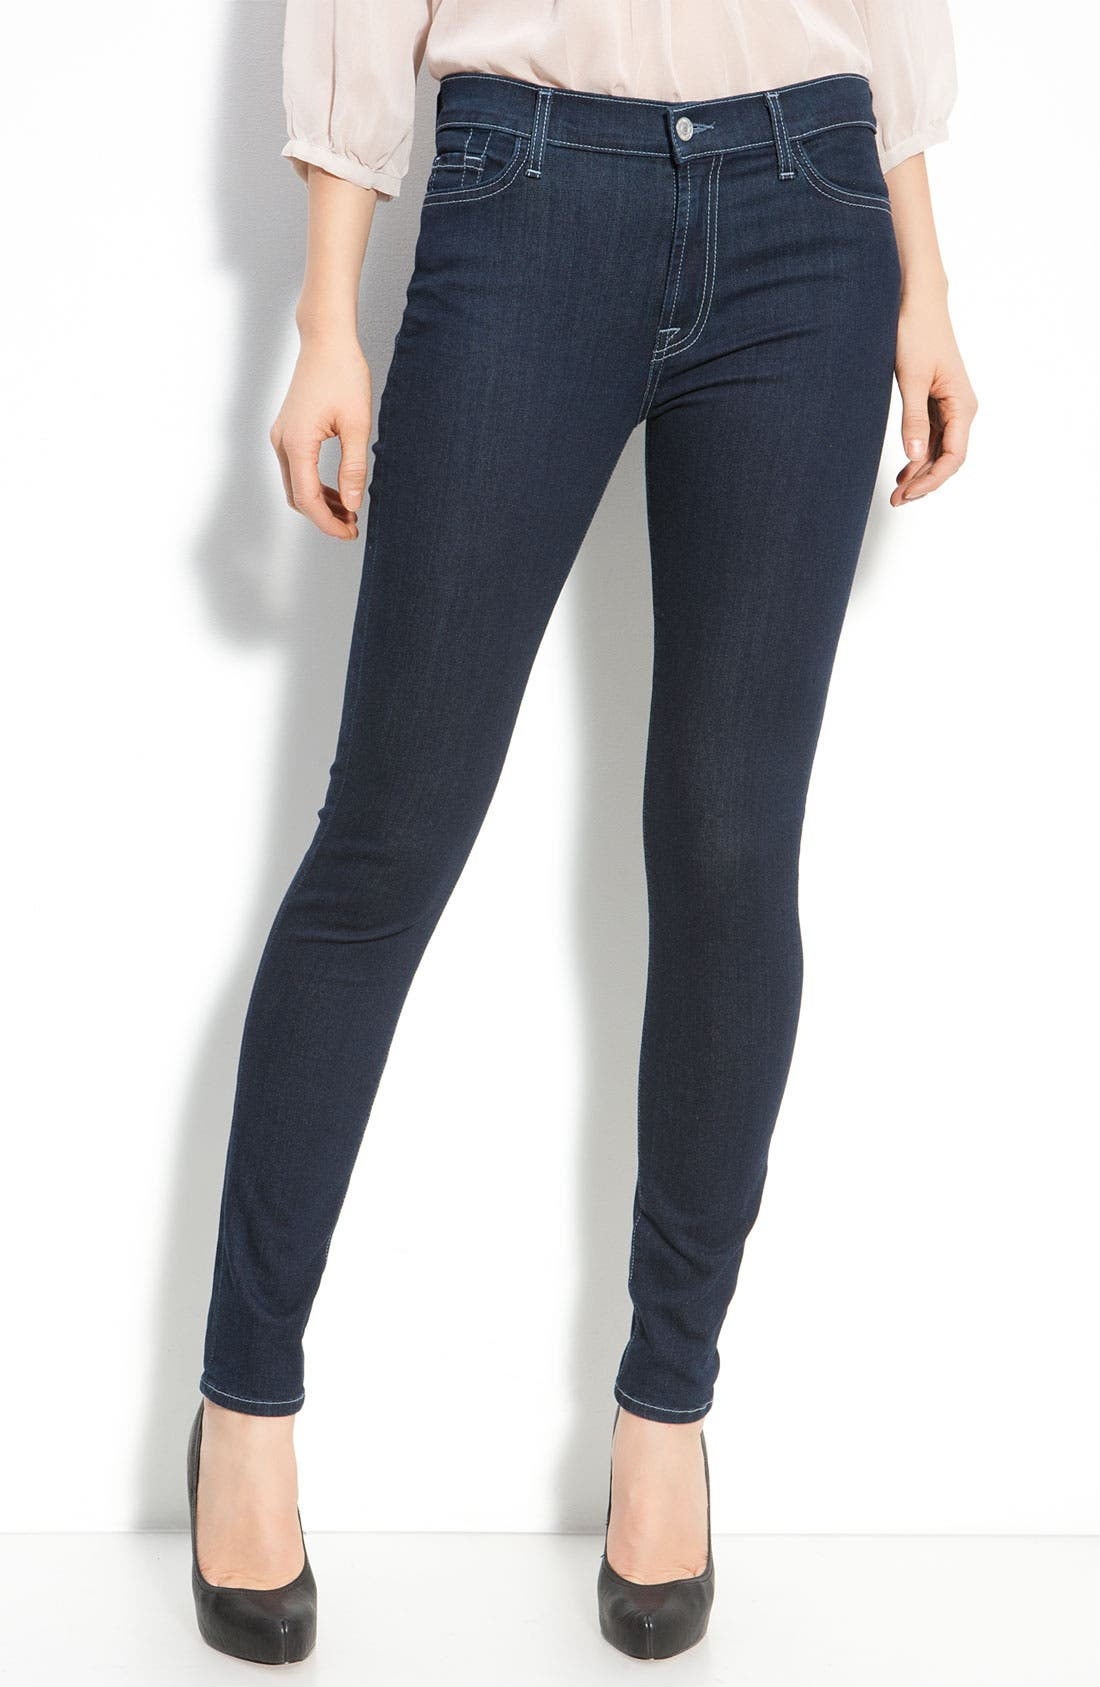 Alternate Image 1 Selected - 7 For All Mankind® High Rise Skinny Leg Jeans (Rinsed Indigo Wash)